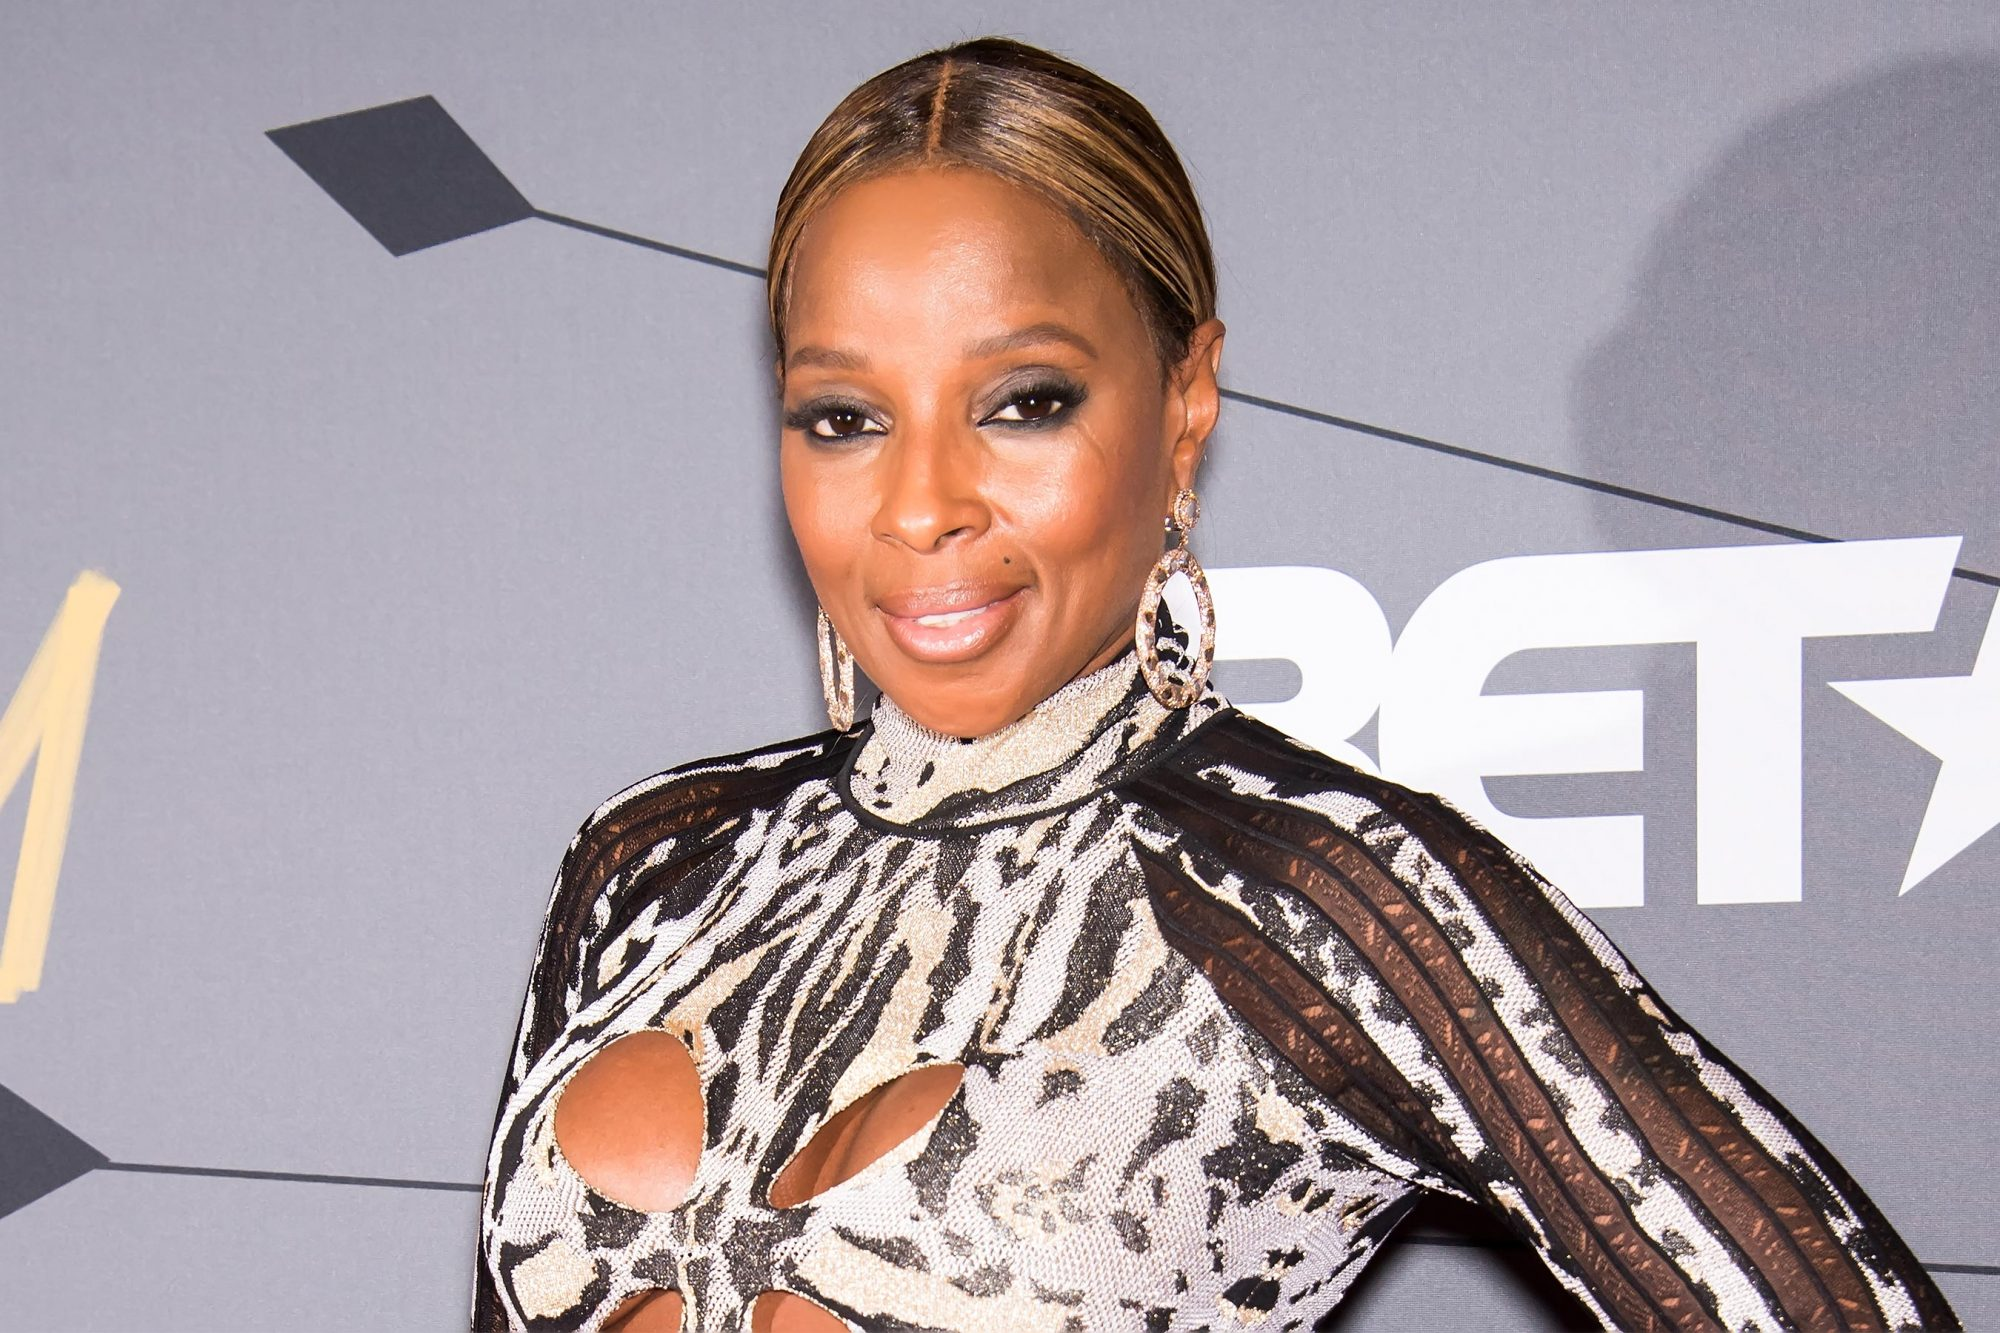 NEWARK, NJ - AUGUST 26: Singer-songwriter and Star Power Award recipient Mary J. Blige attends 2018 Black Girls Rock! at New Jersey Performing Arts Center on August 26, 2018 in Newark, New Jersey. (Photo by Gilbert Carrasquillo/WireImage)